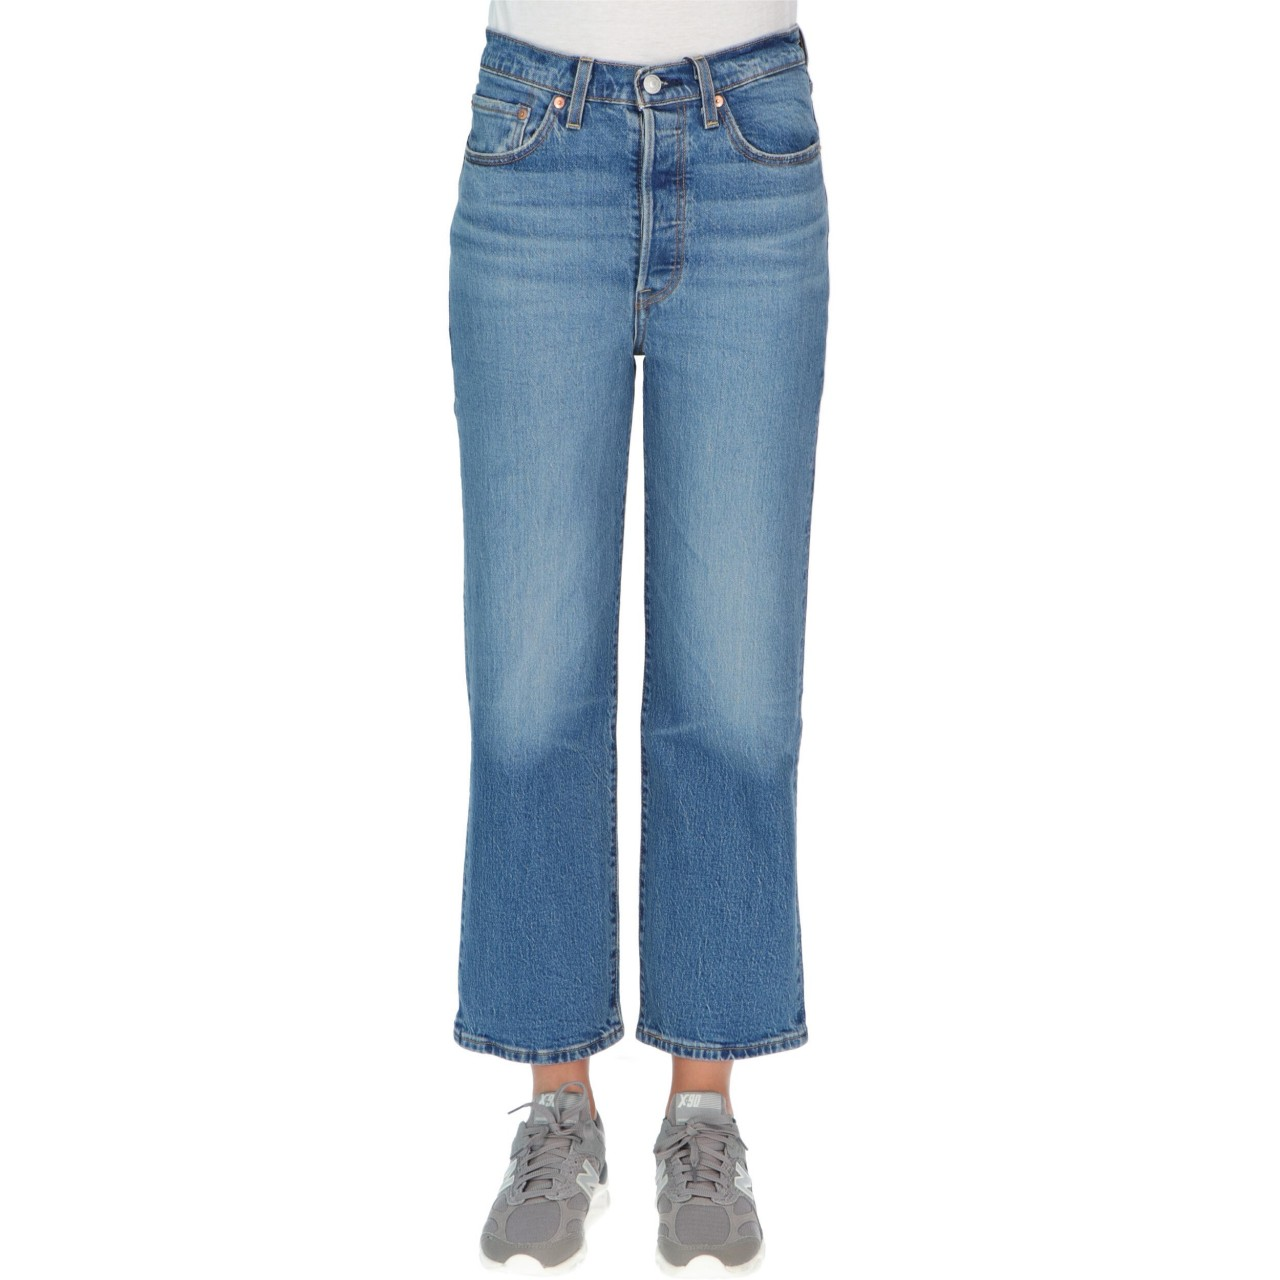 Levi's Donna Jeans Lev's Donna Ribcage Straight Ankle Tango Light 72693M